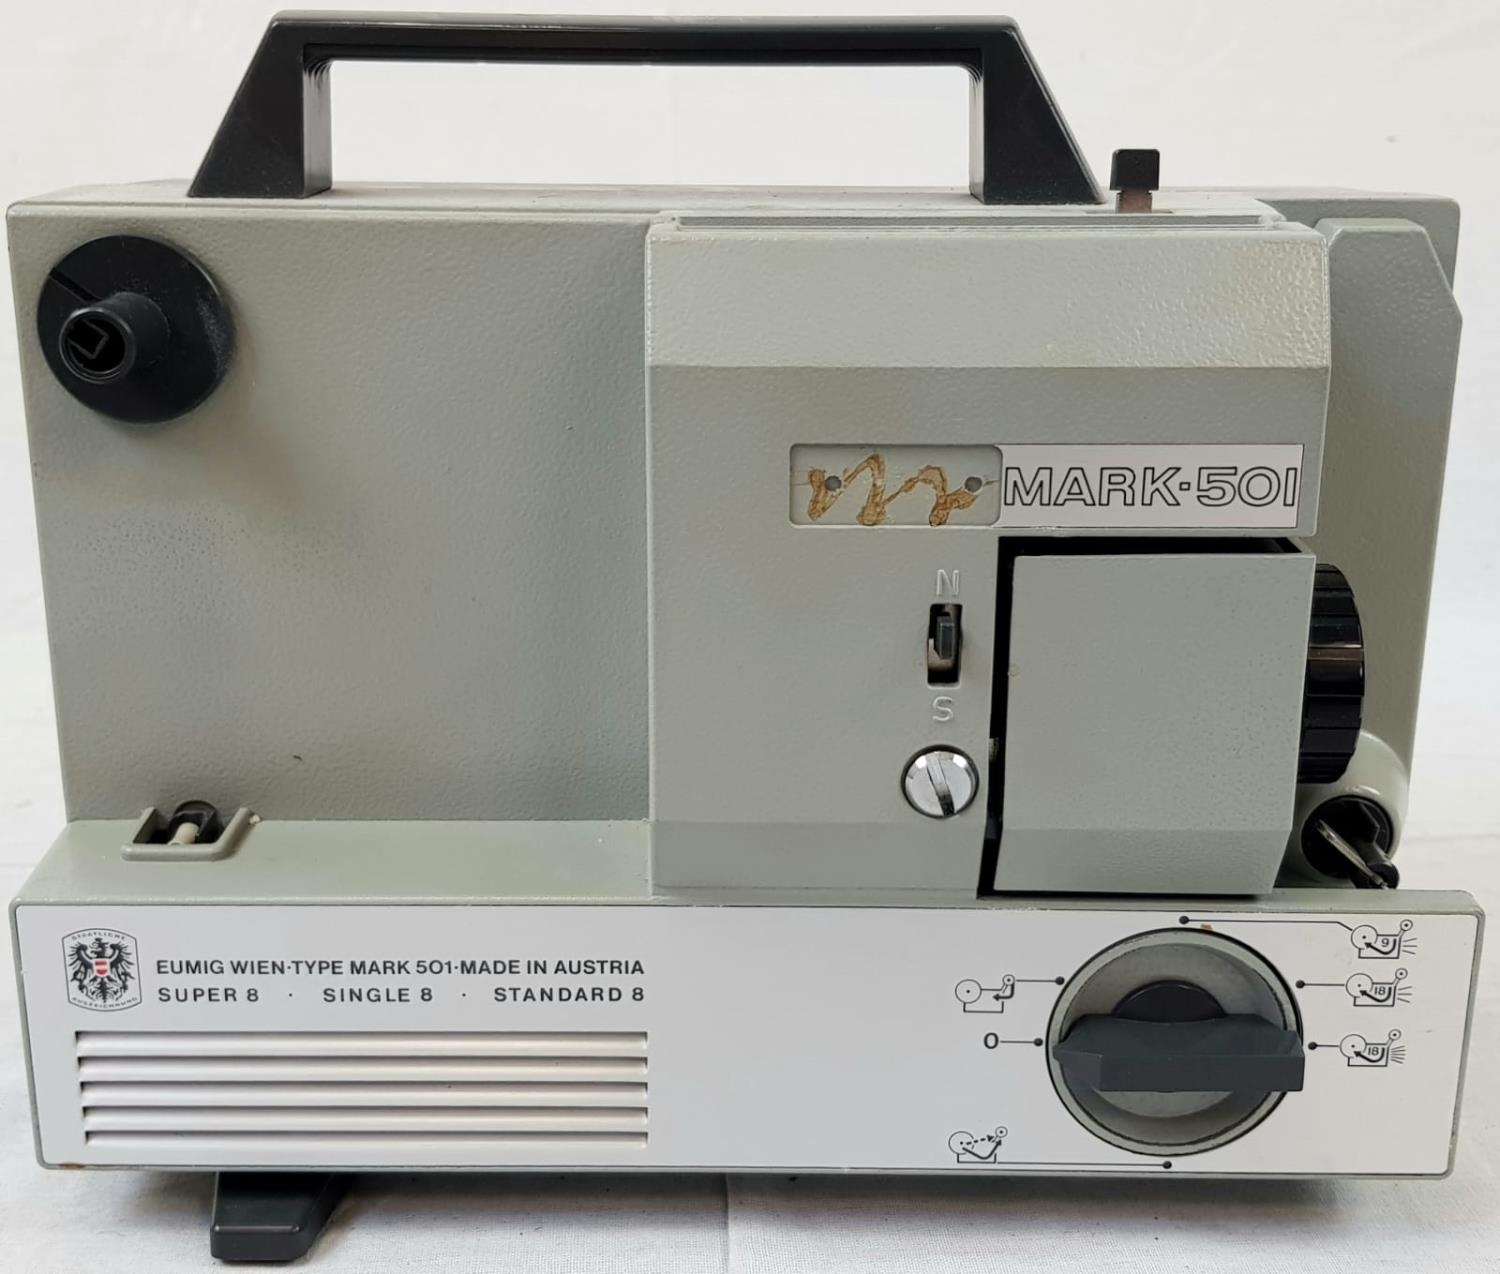 EUMIG 8MM PROJECTOR IN WORKING ORDER PLUS A COLLAPSABLE SCREEN(slight damage but still usable - Image 2 of 6